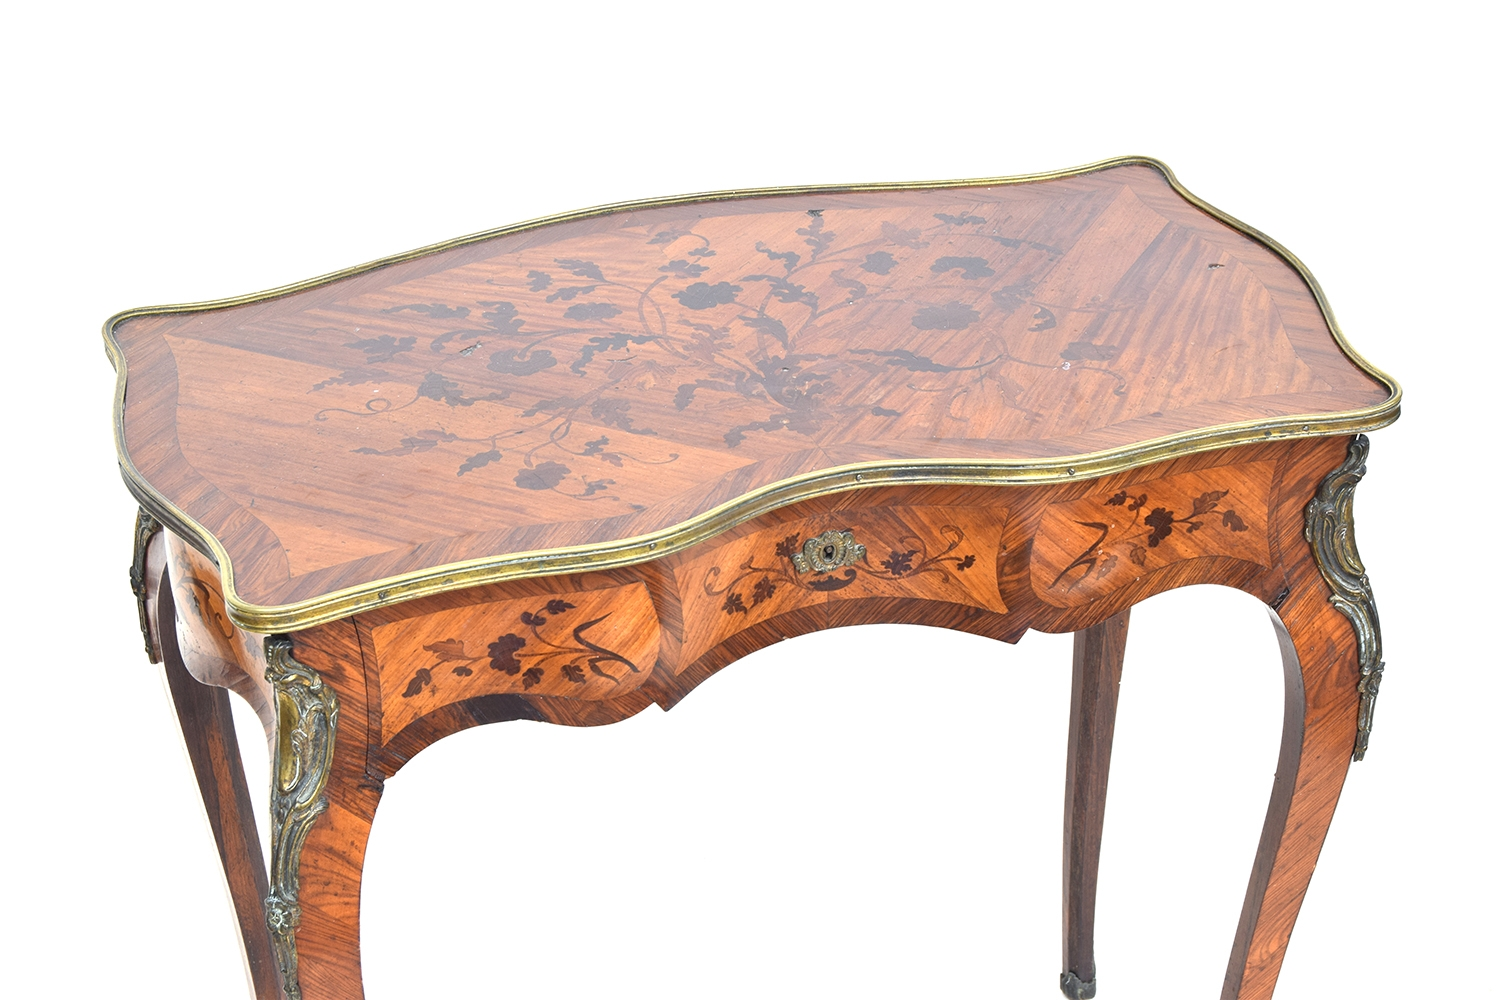 A Continental Louis XV style ormolu mounted marquetry side table, serpentine top with single drawer, - Image 3 of 3